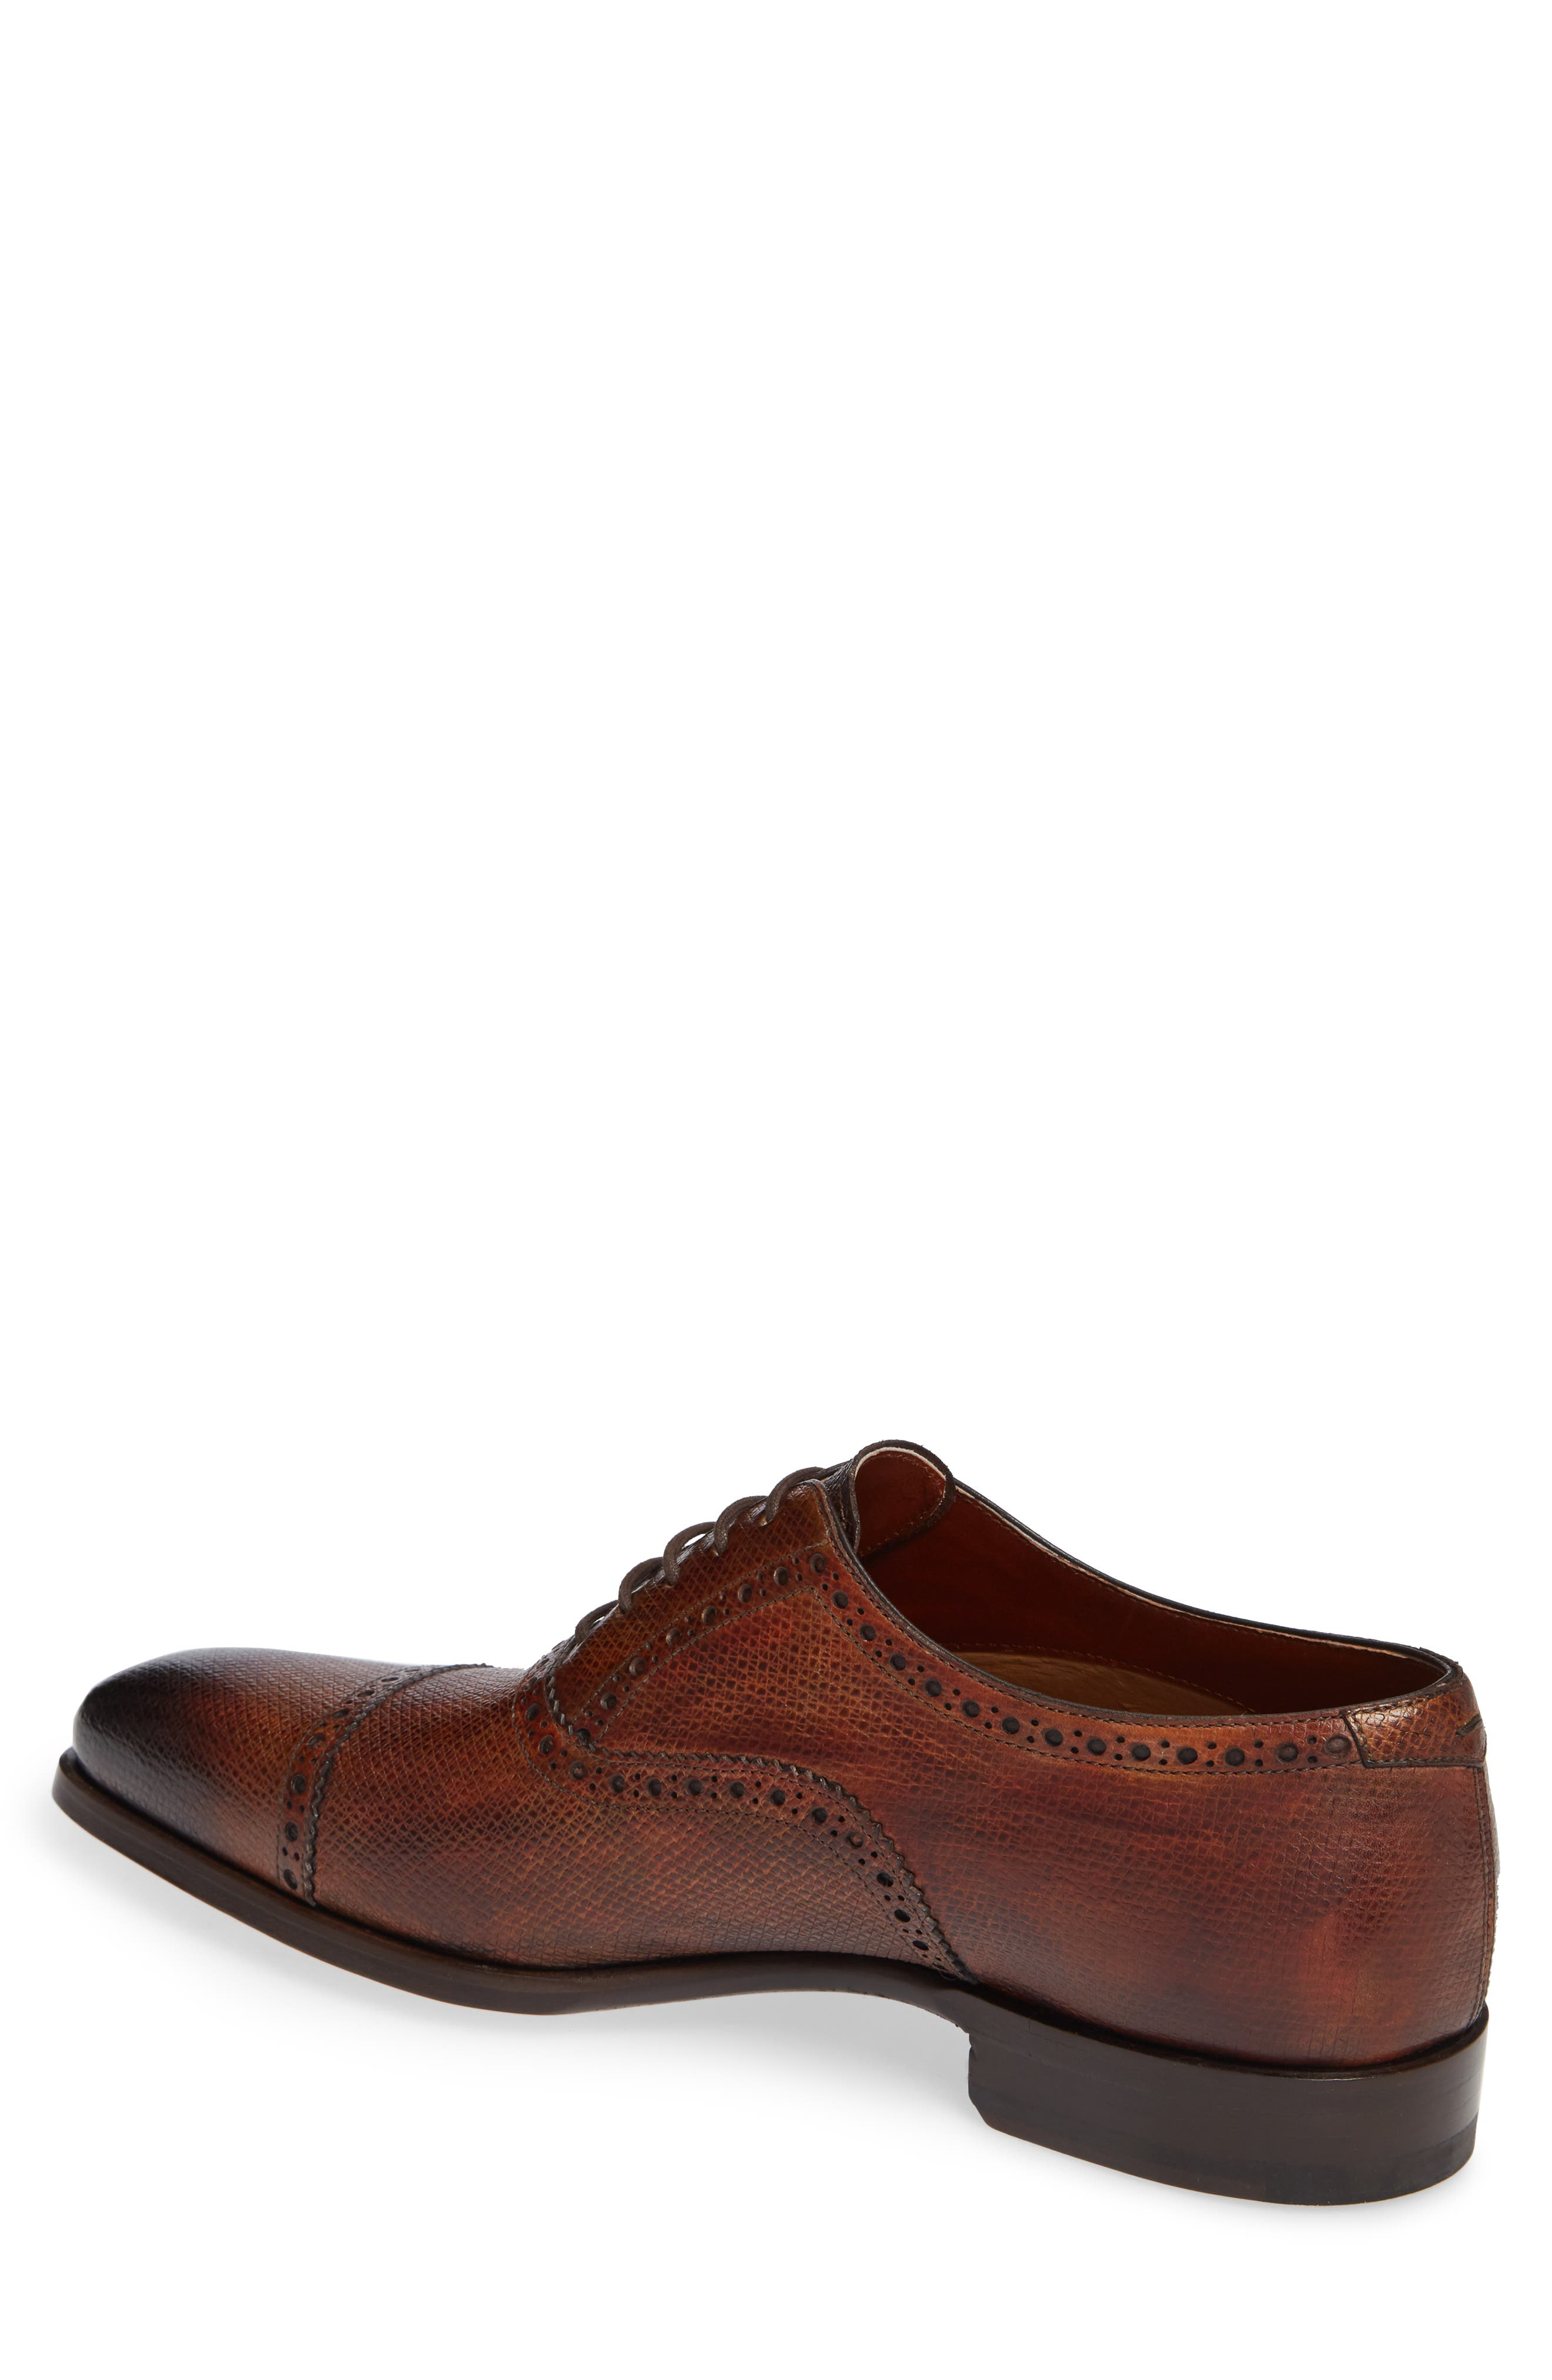 Charlton Cap Toe Oxford,                             Alternate thumbnail 2, color,                             MID BROWN LEATHER